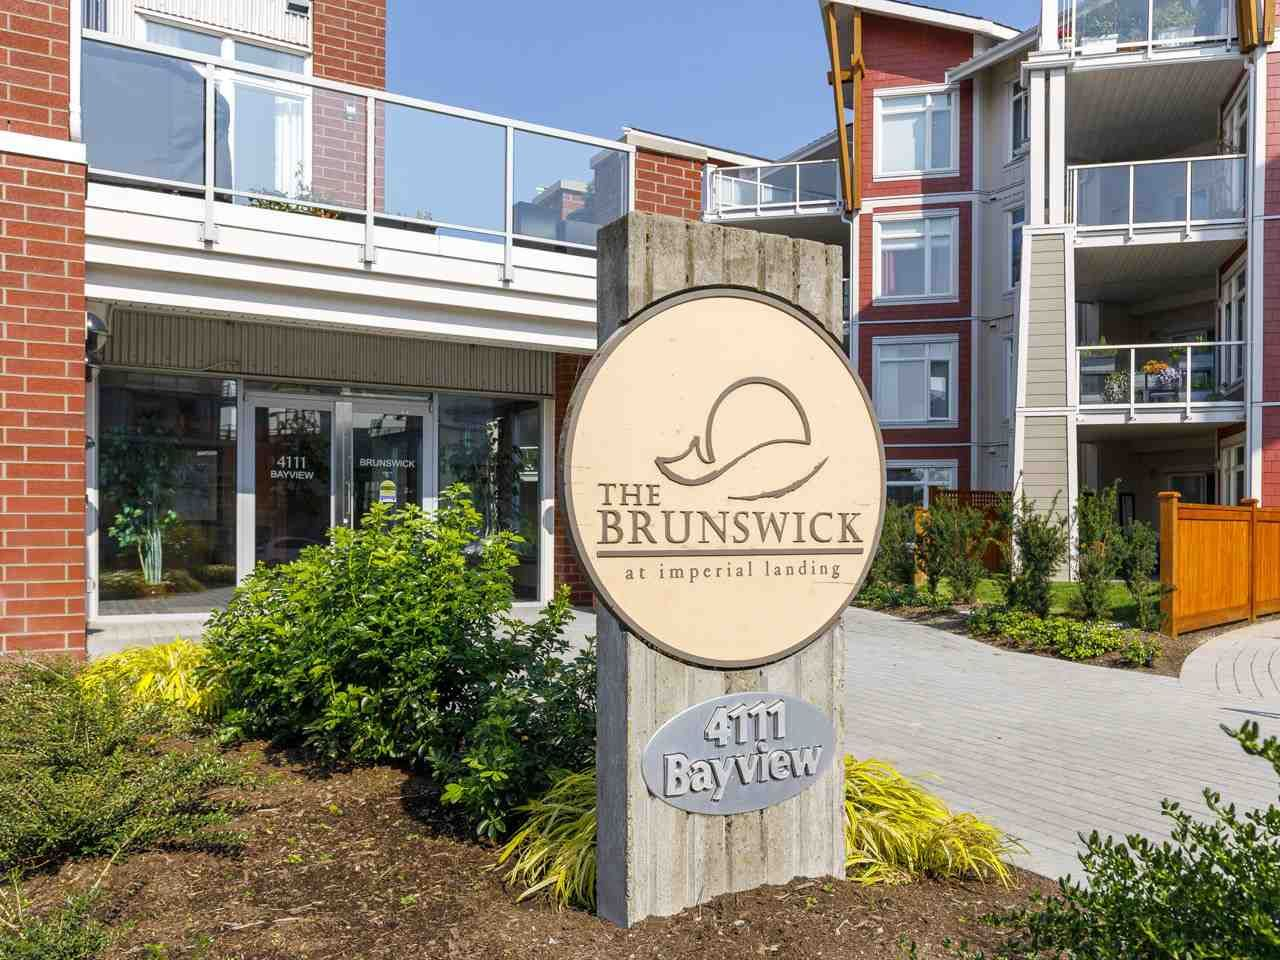 "Main Photo: 304 4111 BAYVIEW Street in Richmond: Steveston South Condo for sale in ""THE BRUNSWICK AT THE VILLAGE"" : MLS®# R2505017"